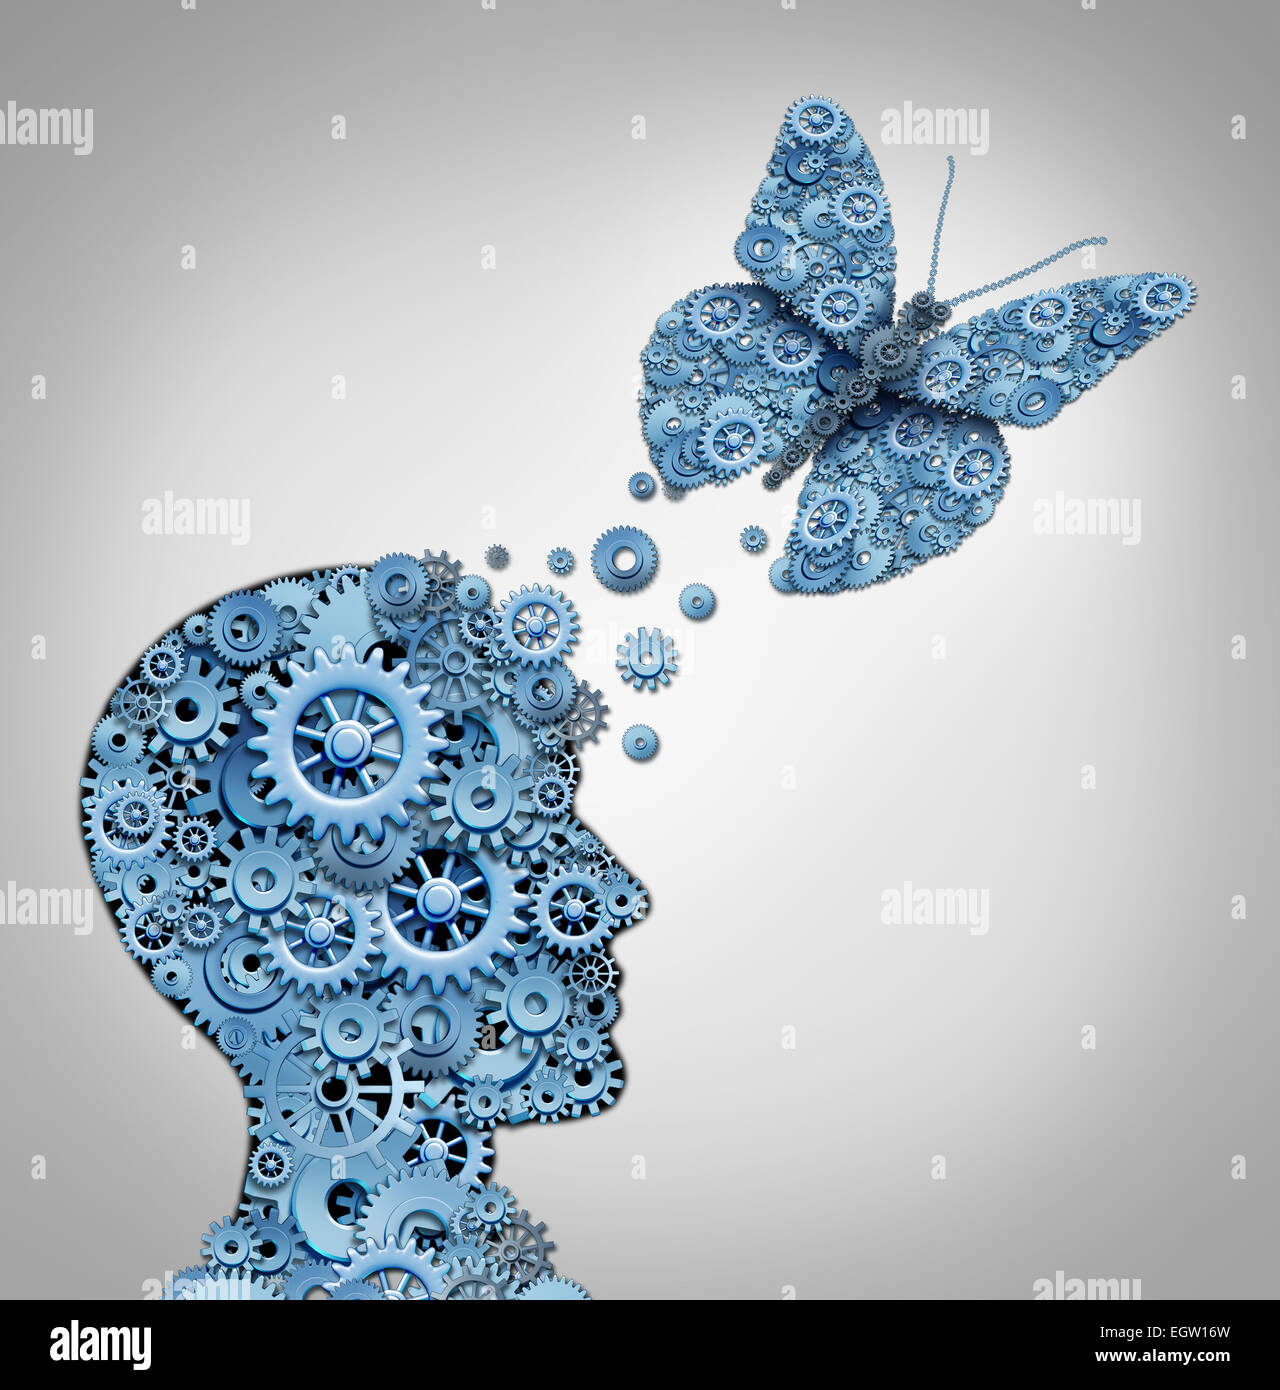 Human thinking and artificial intelligence concept as a technology symbol for a robot head and butterfly shaped - Stock Image